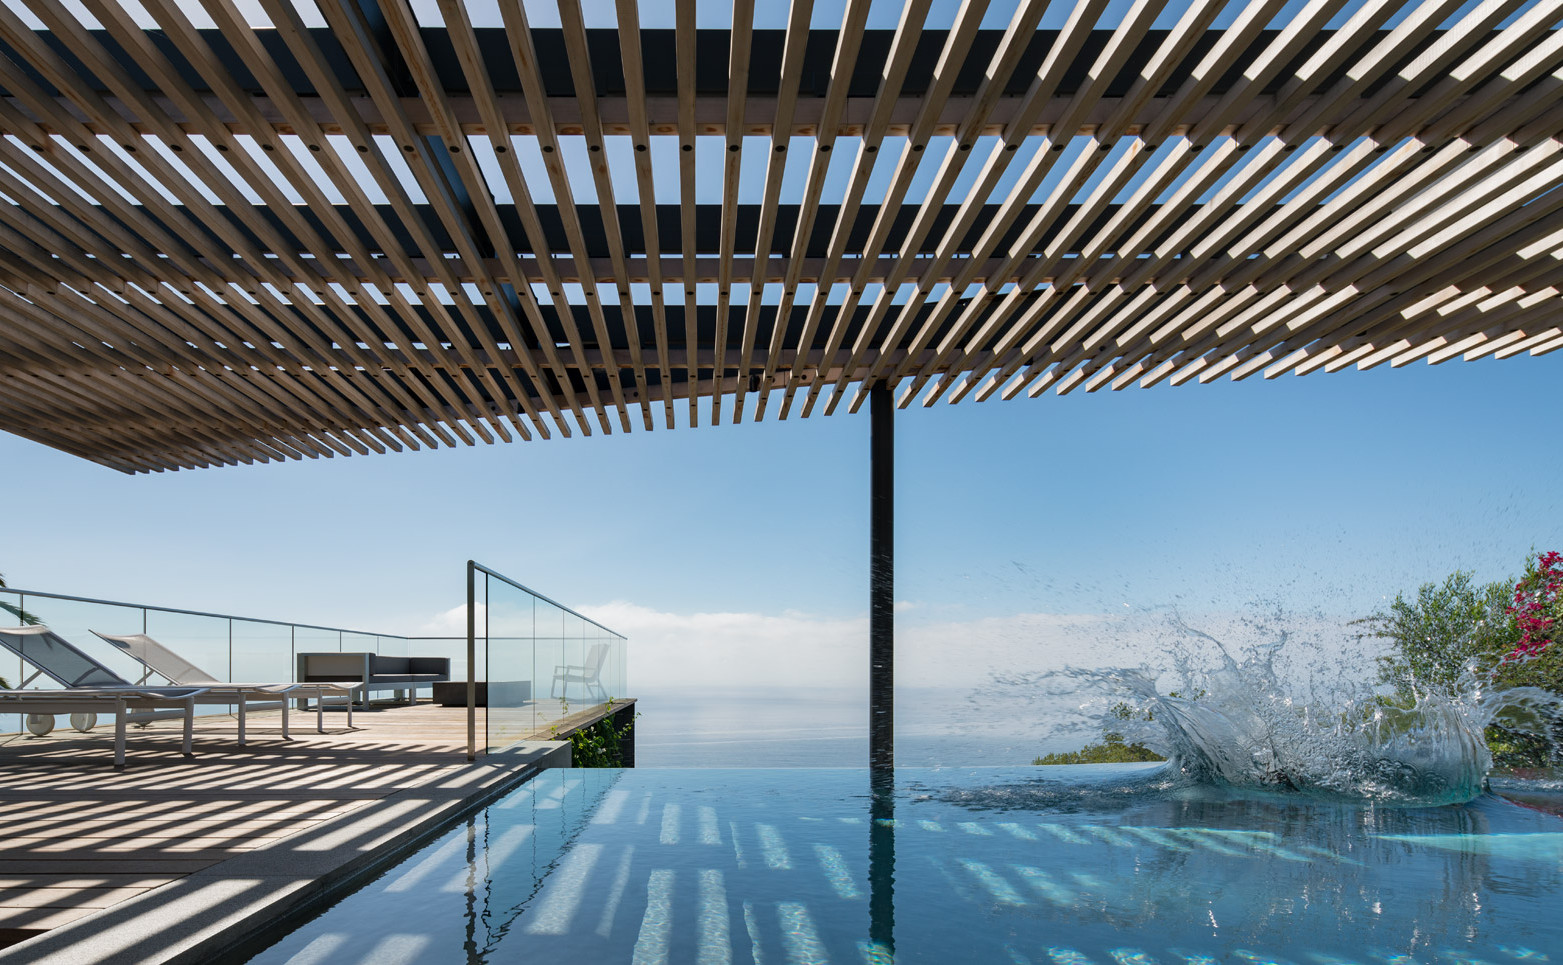 malibu-hillside-michael-goorevich-architect-pllc-usa-architecture-california-malibu-residential_dezeen_1704_col_7